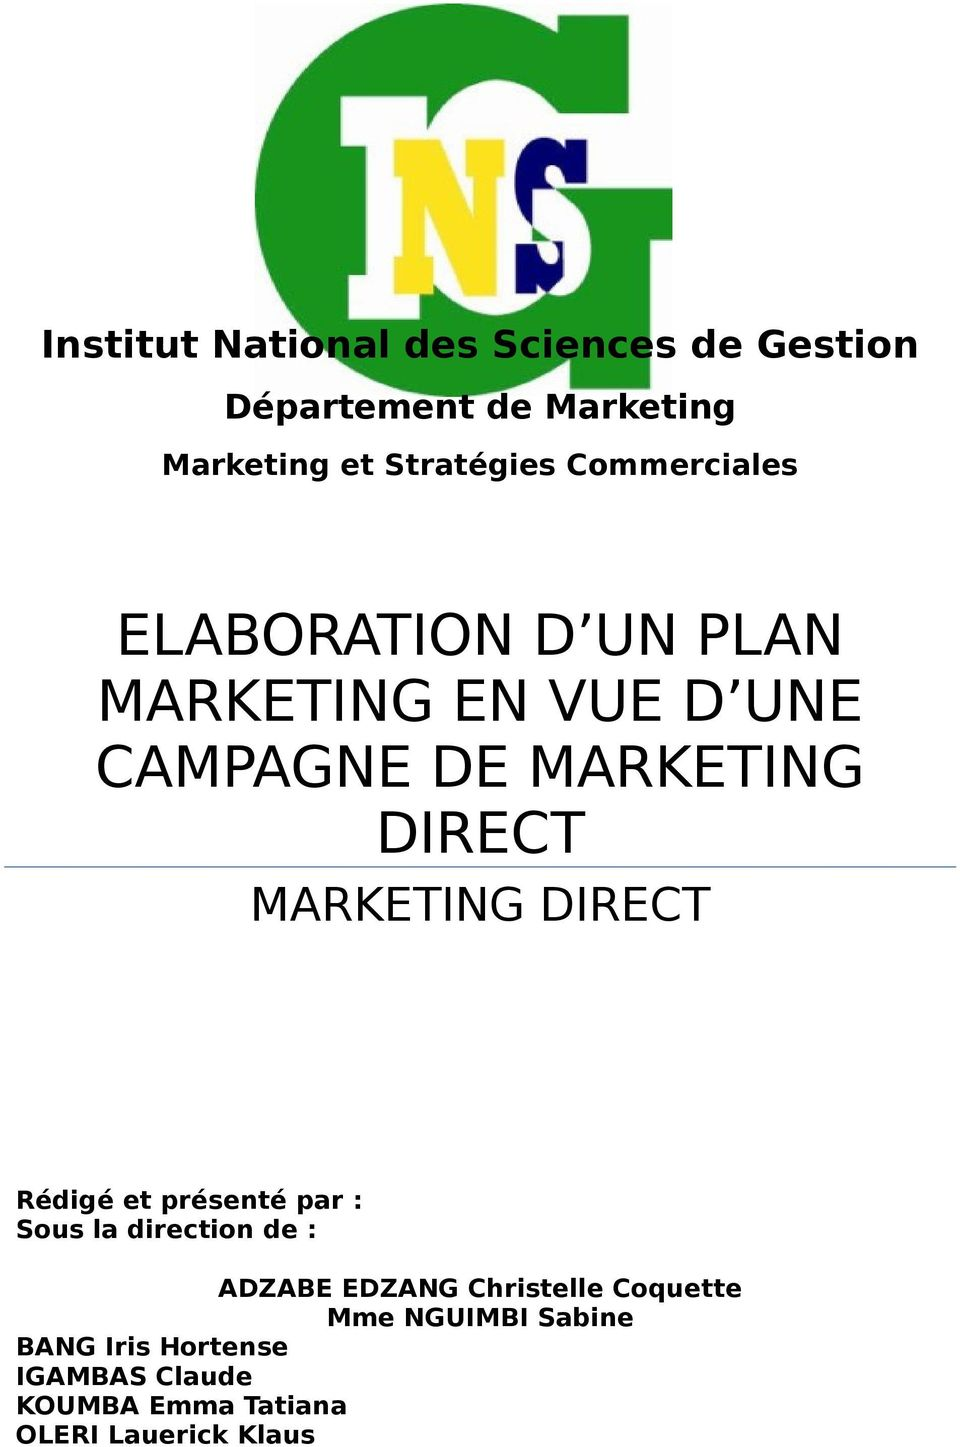 MARKETING DIRECT Rédigé et présenté par : Sous la direction de : ADZABE EDZANG Christelle